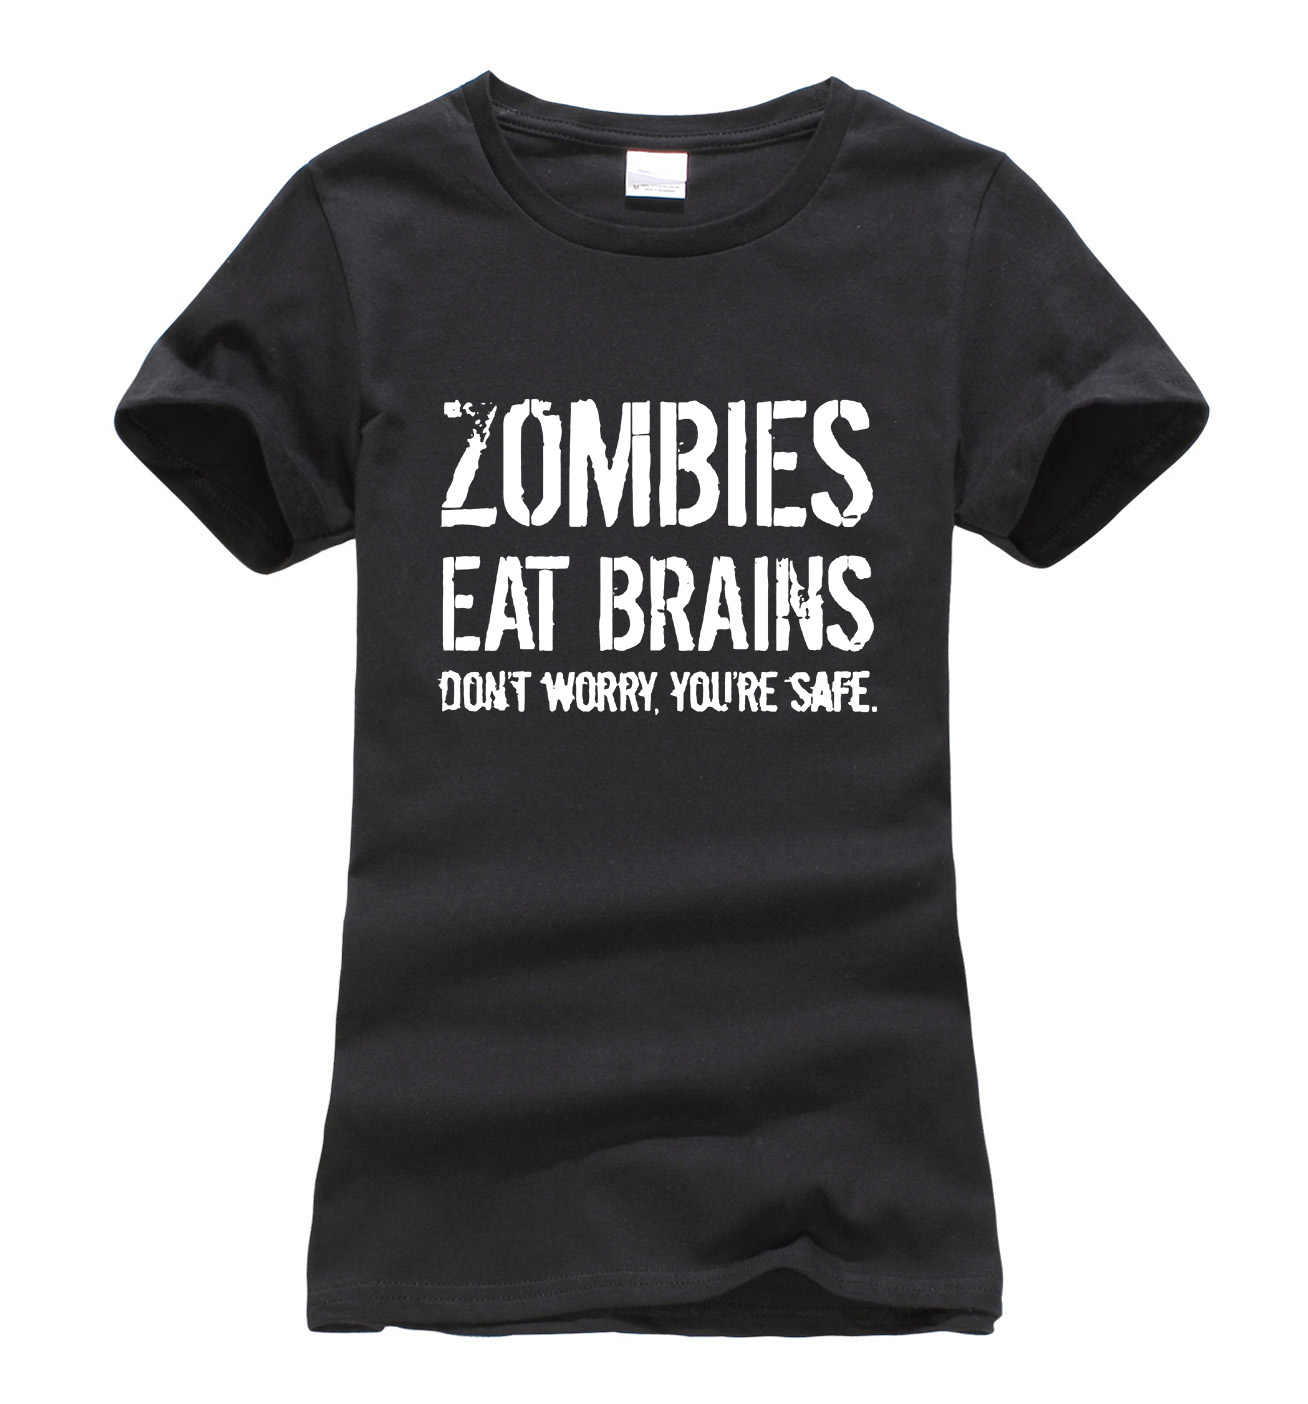 Zombies Eat Brains so You're Safe print women t-shirt 2019 summer fashion harajuku brand korean tee shirt femme funny punk tops